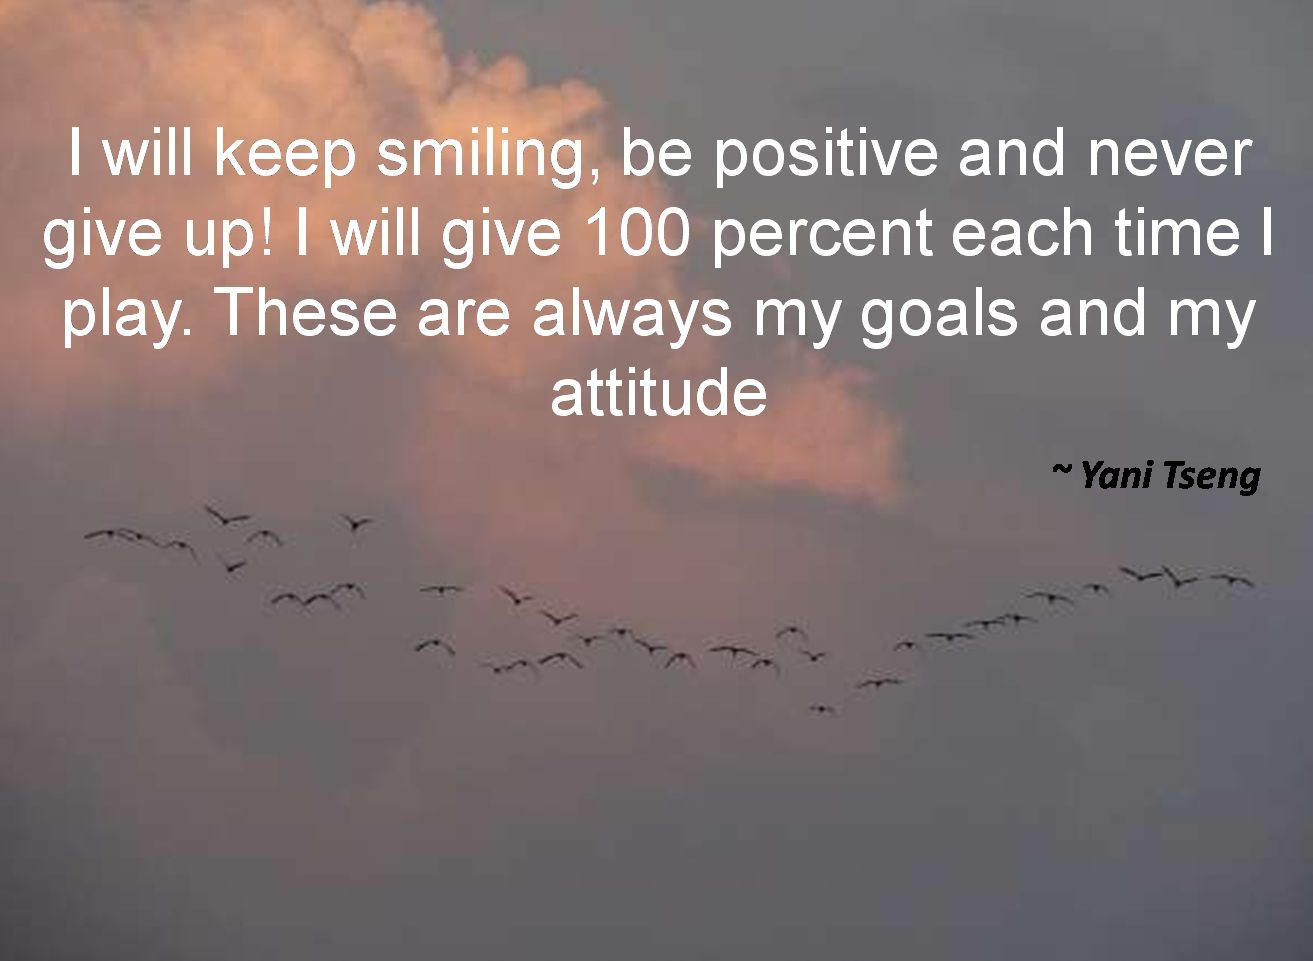 Yani Tseng- I will keep smiling, be positive and never give up! I will give 100 percent each time I play. These are always my goals and my attitude